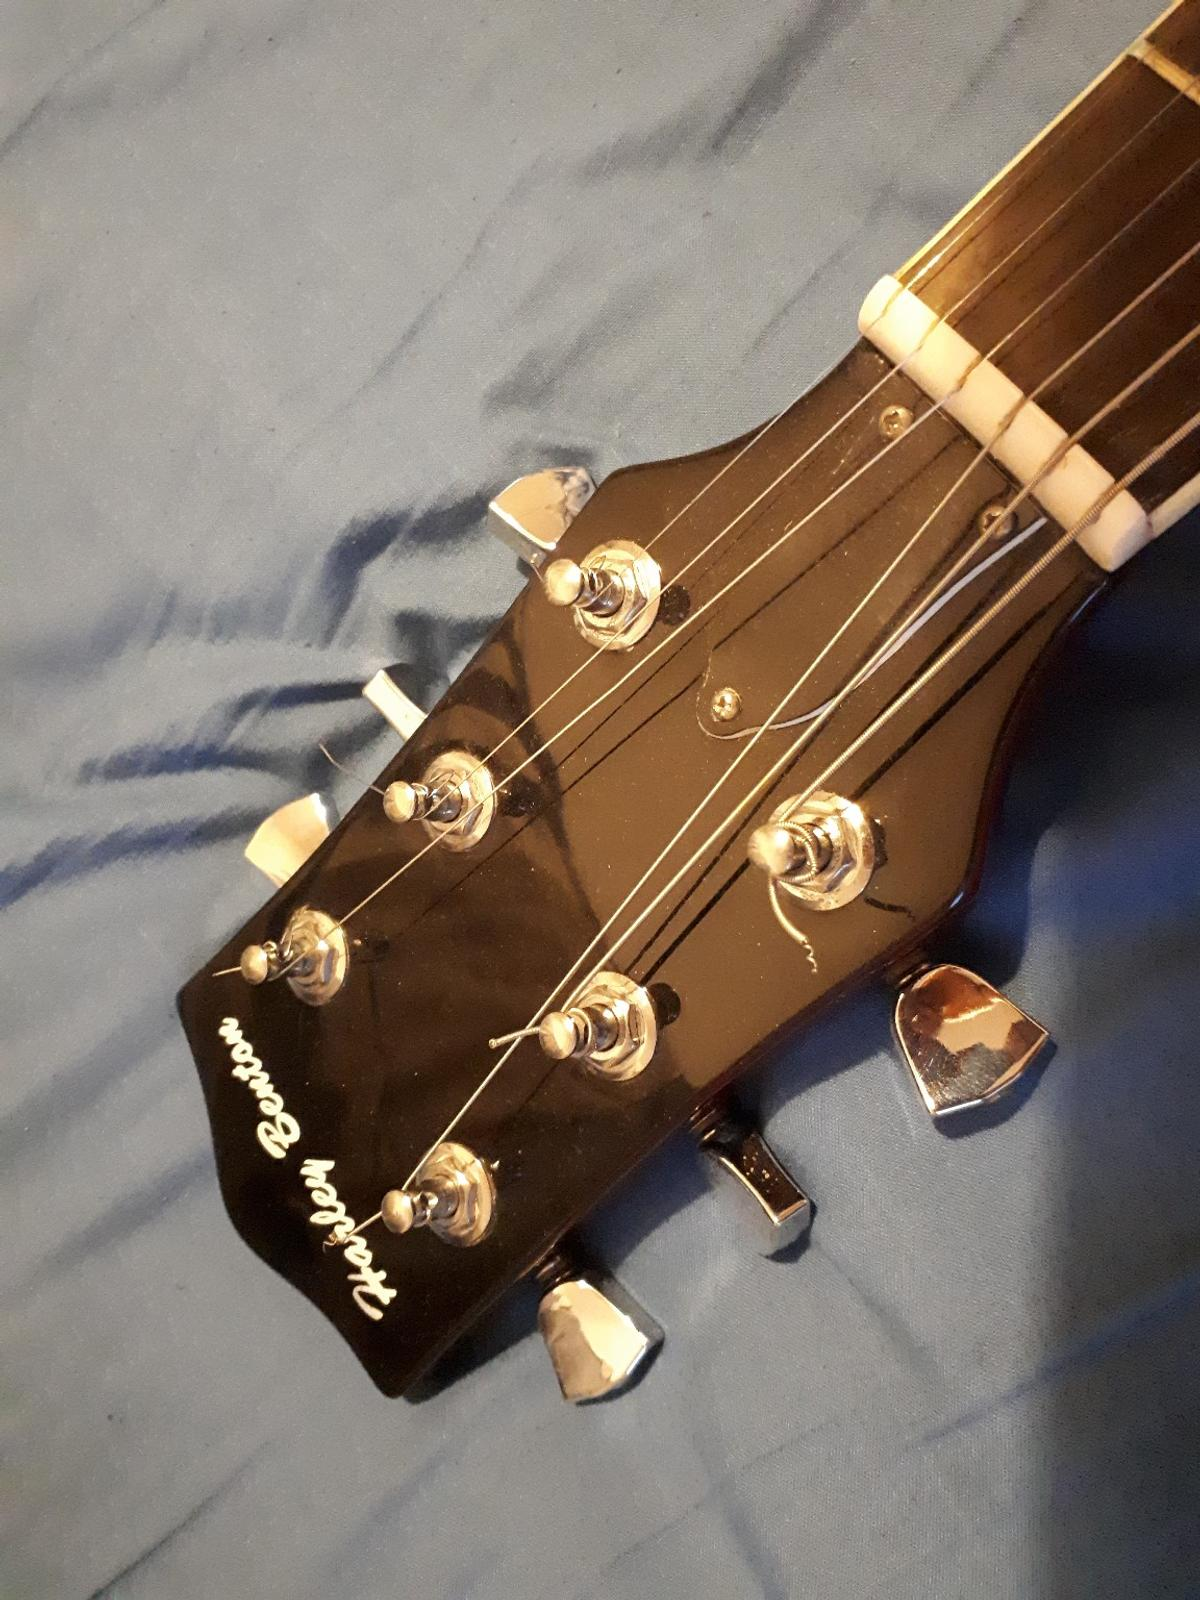 Electric guitar Harley Benton in N22 London for £79 00 for sale - Shpock